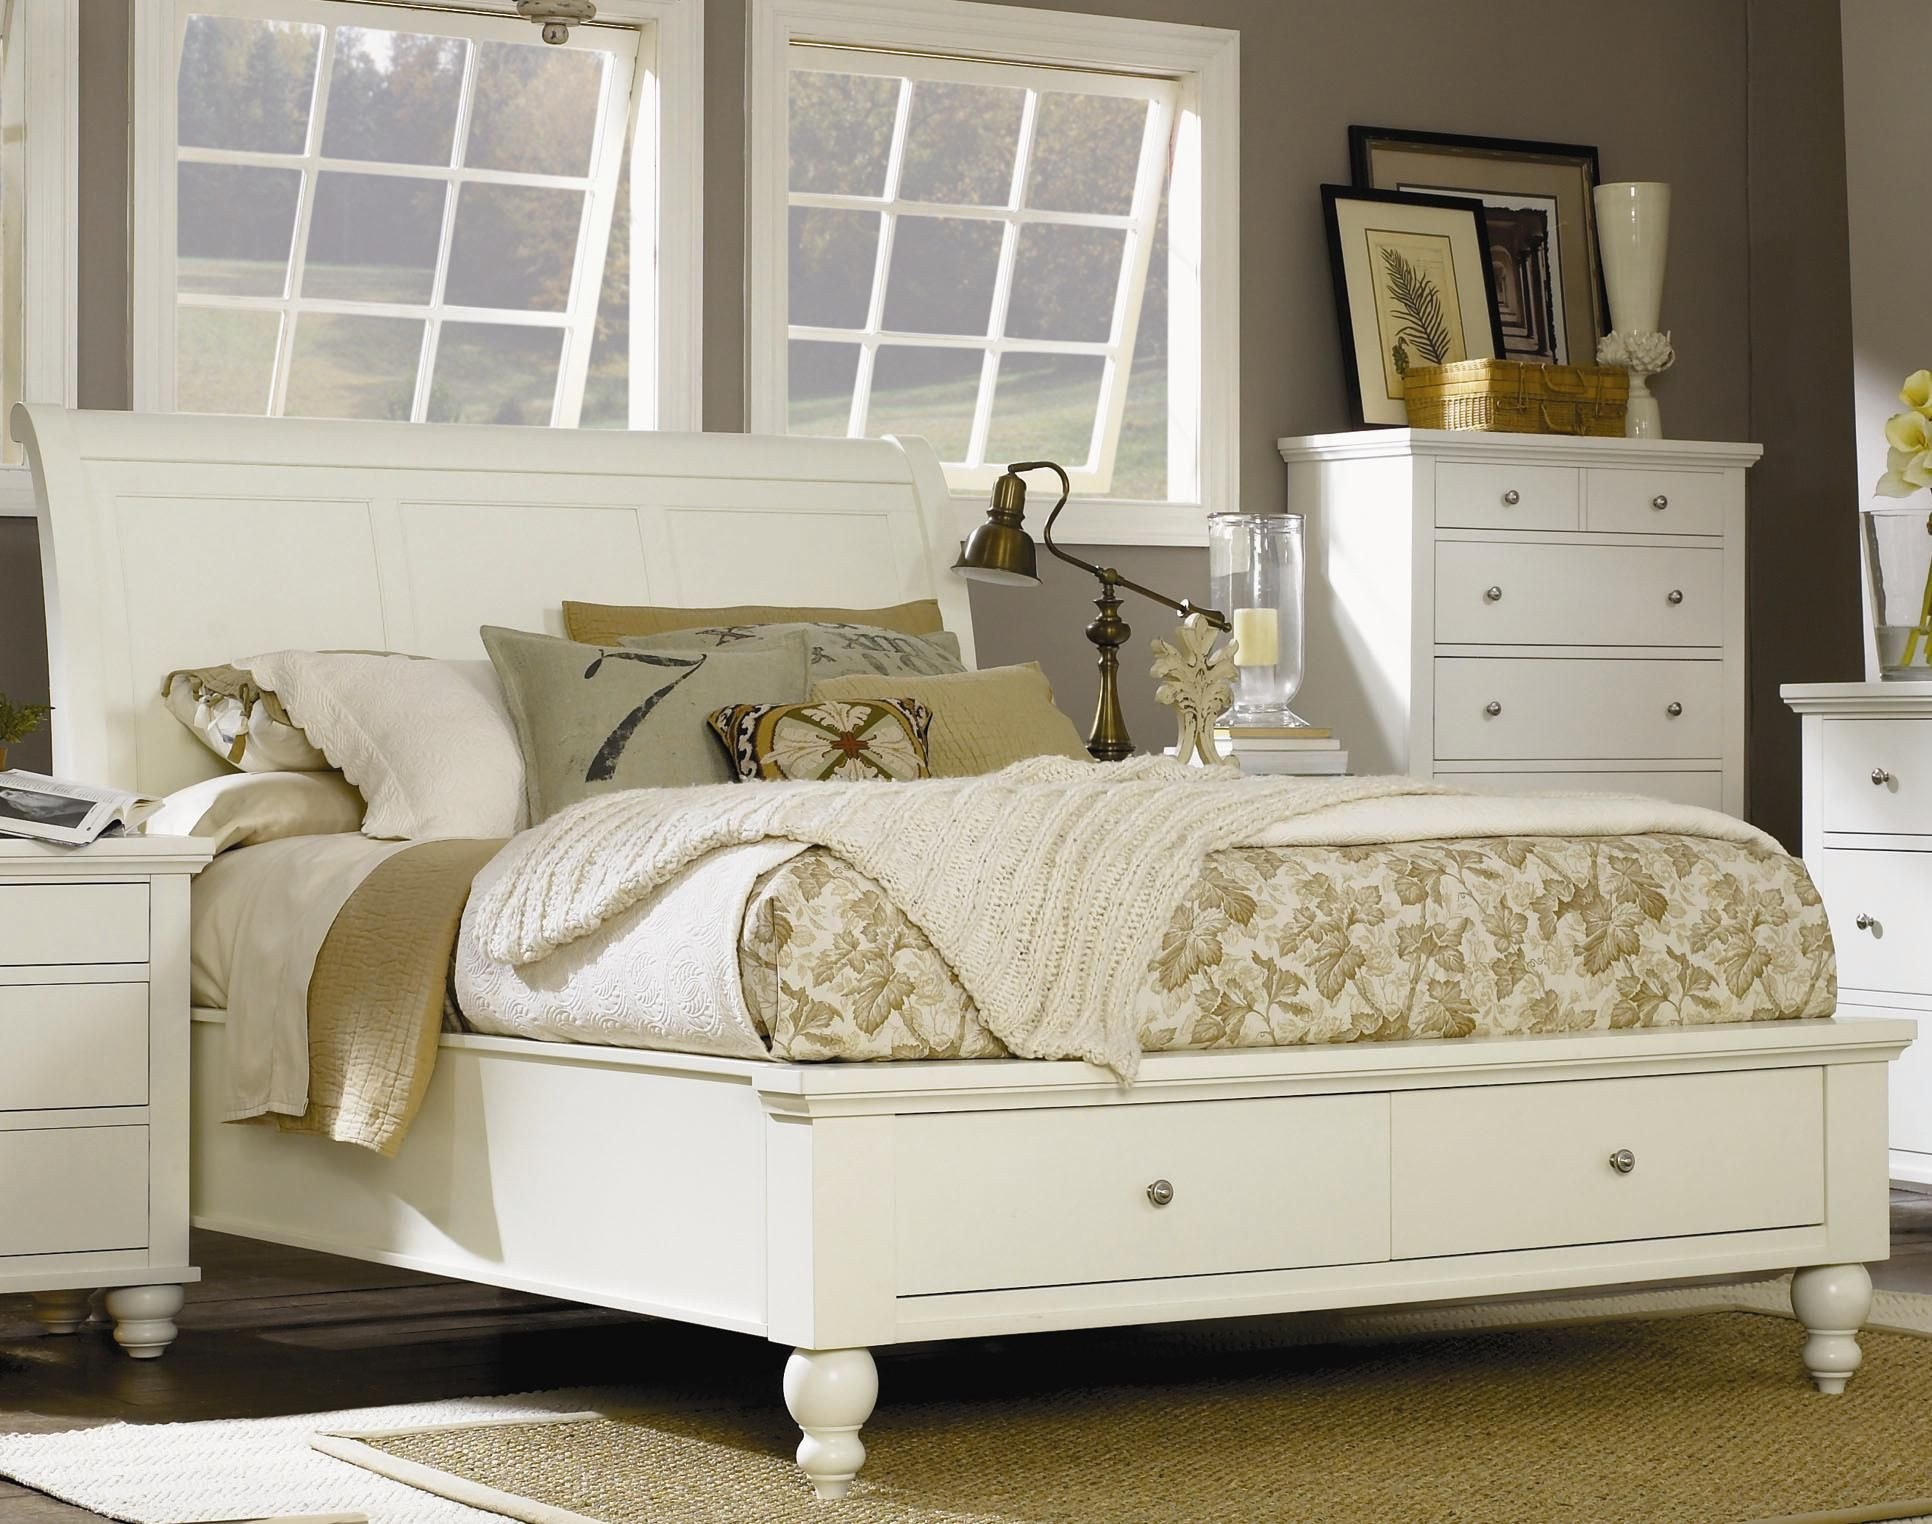 White Bedroom Set Queen New Cambridge King Size Bed with Sleigh Headboard & Drawer